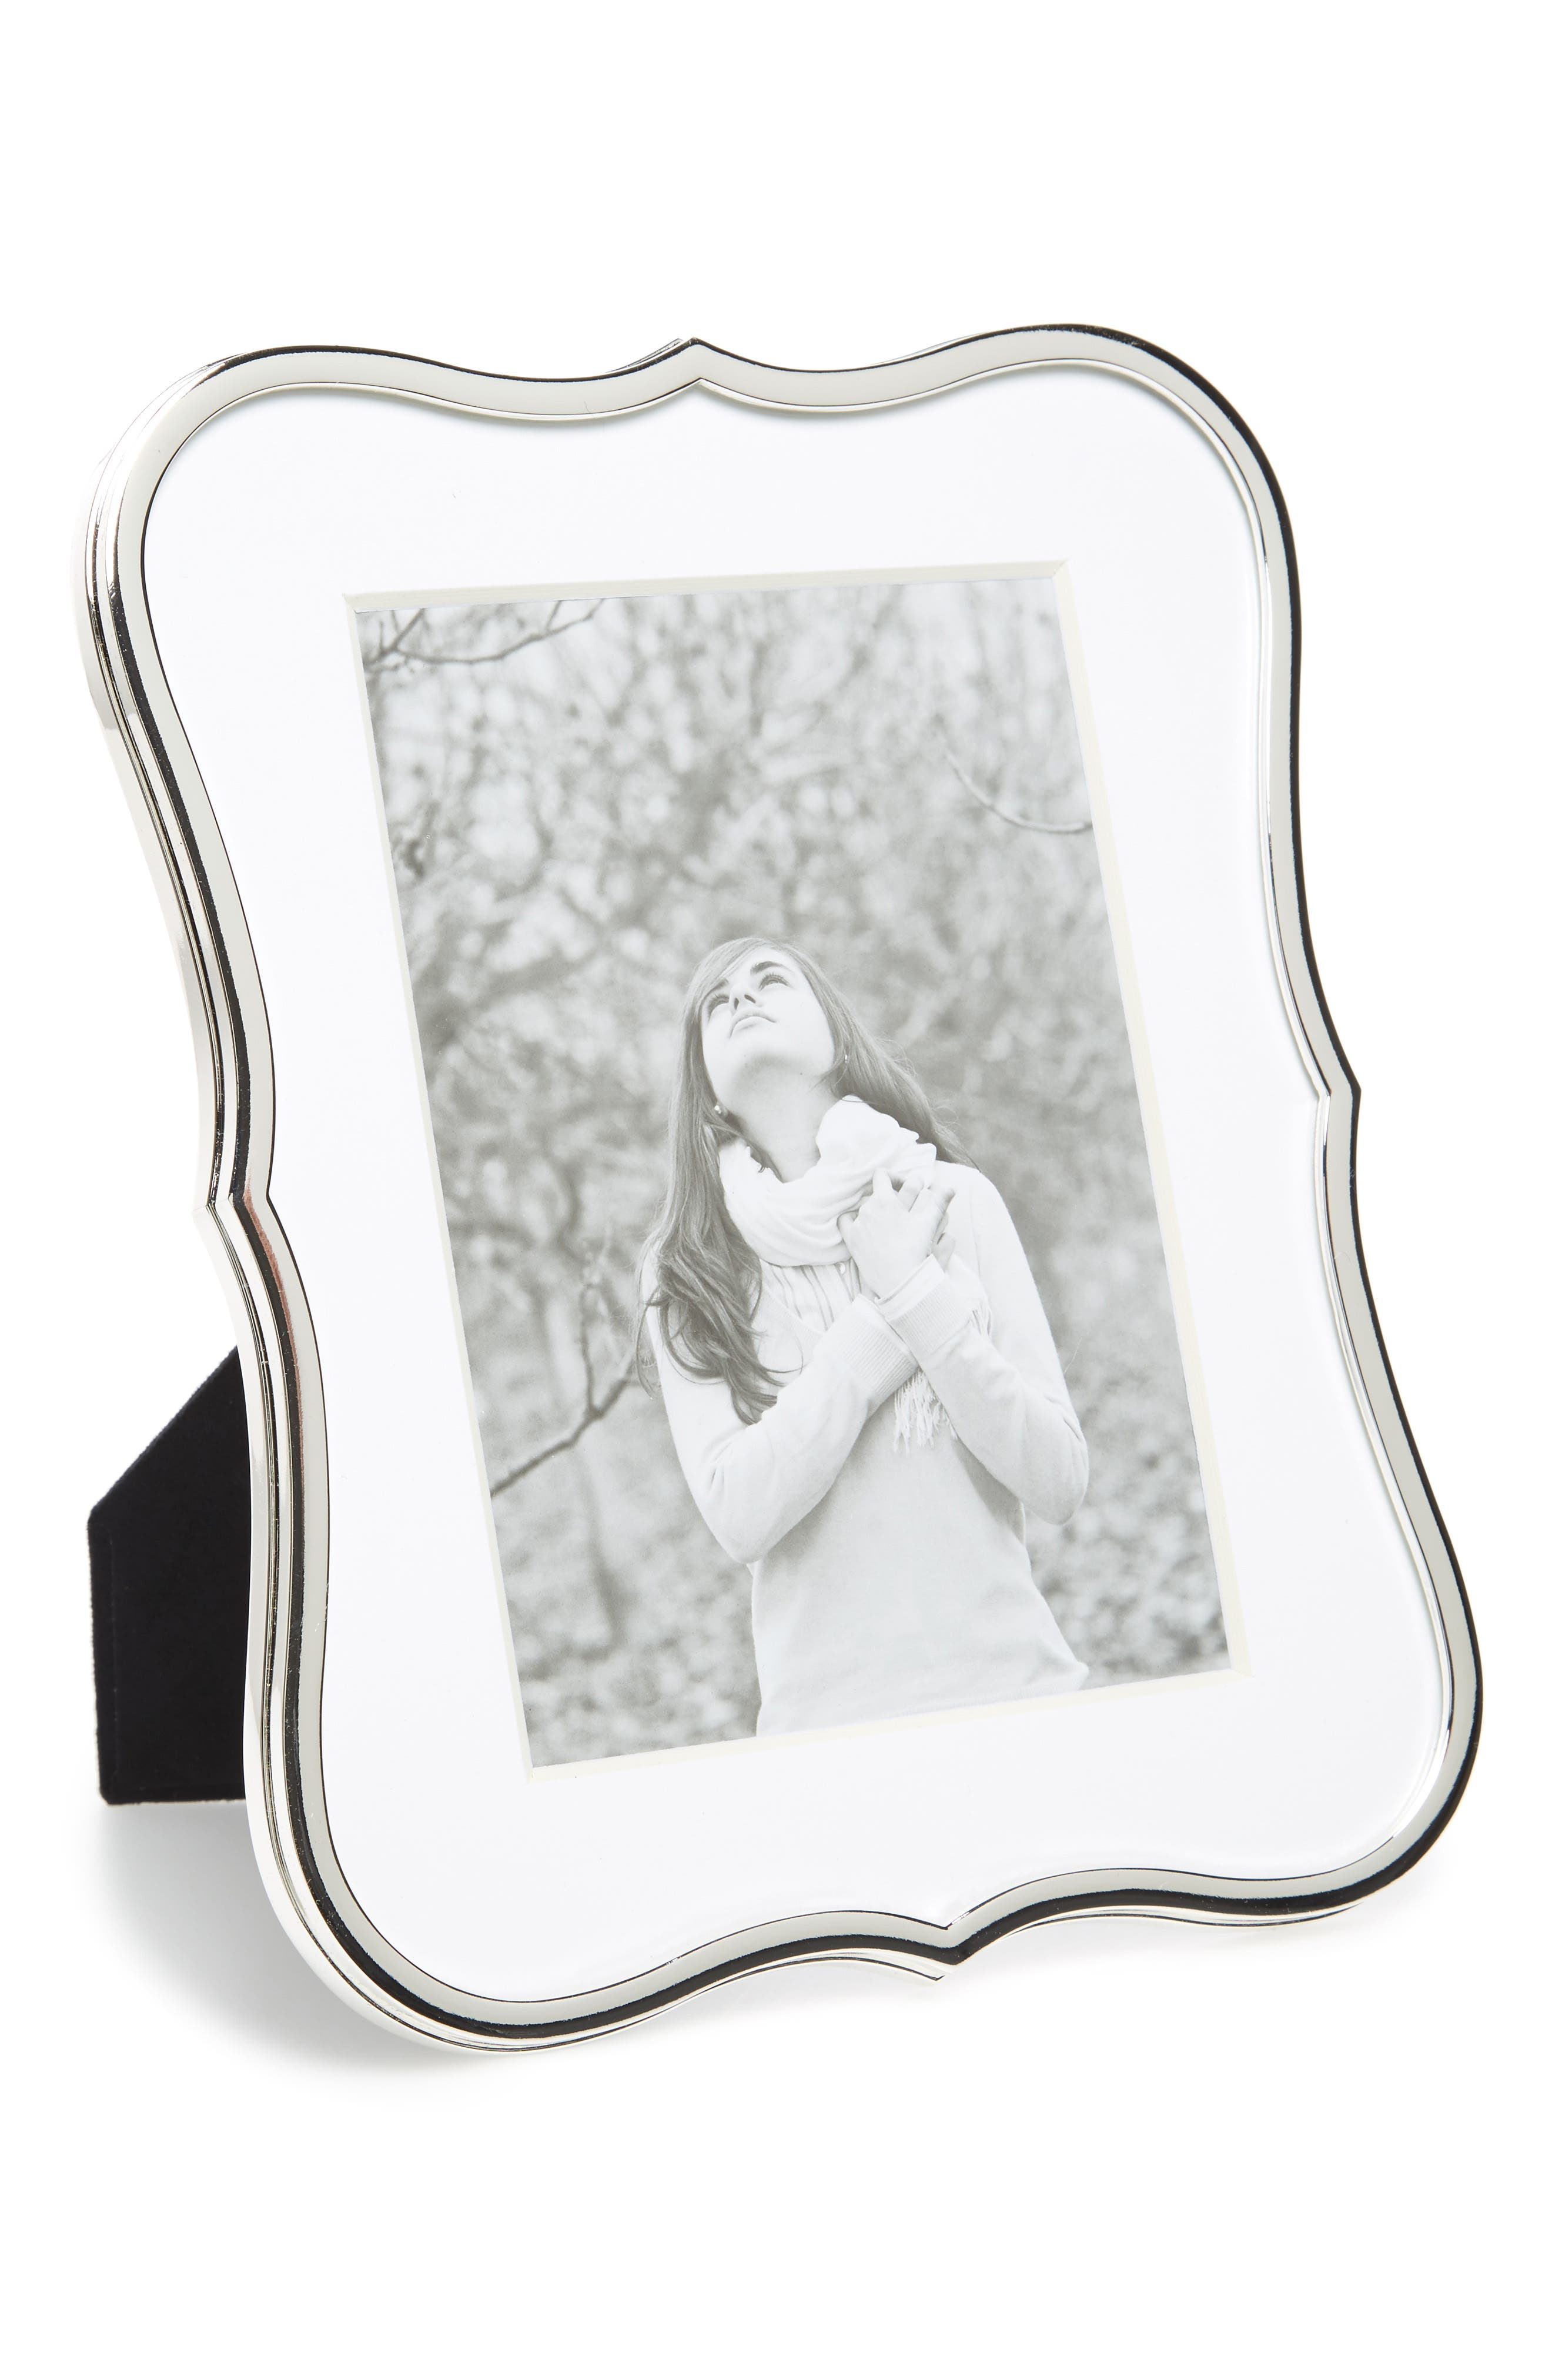 crown point picture frame,                             Main thumbnail 1, color,                             NO COLOR